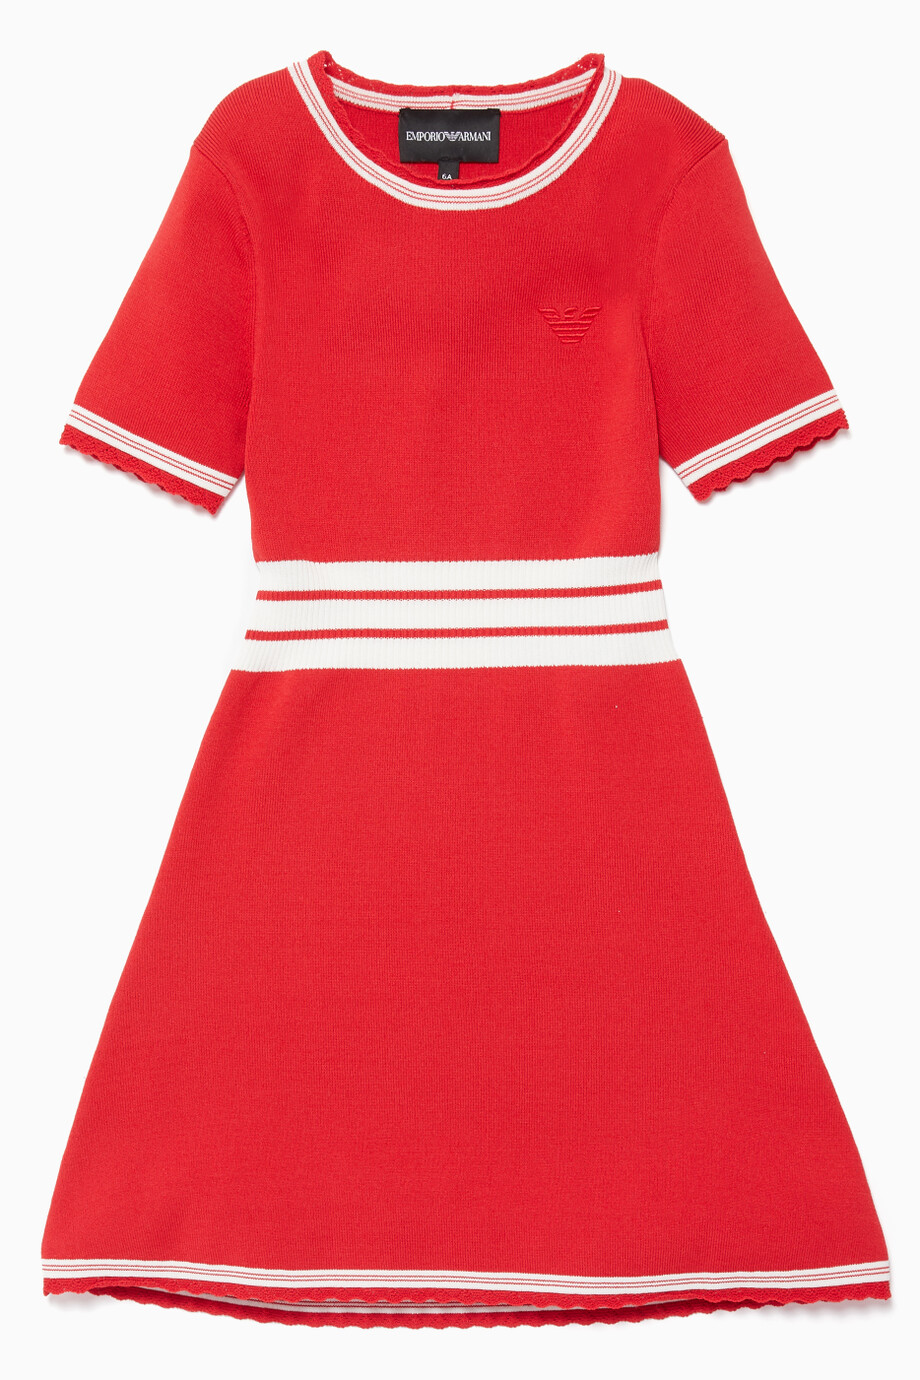 2f95d6c2effc Shop Emporio Armani Red Red Contrast Stripe Dress for Kids